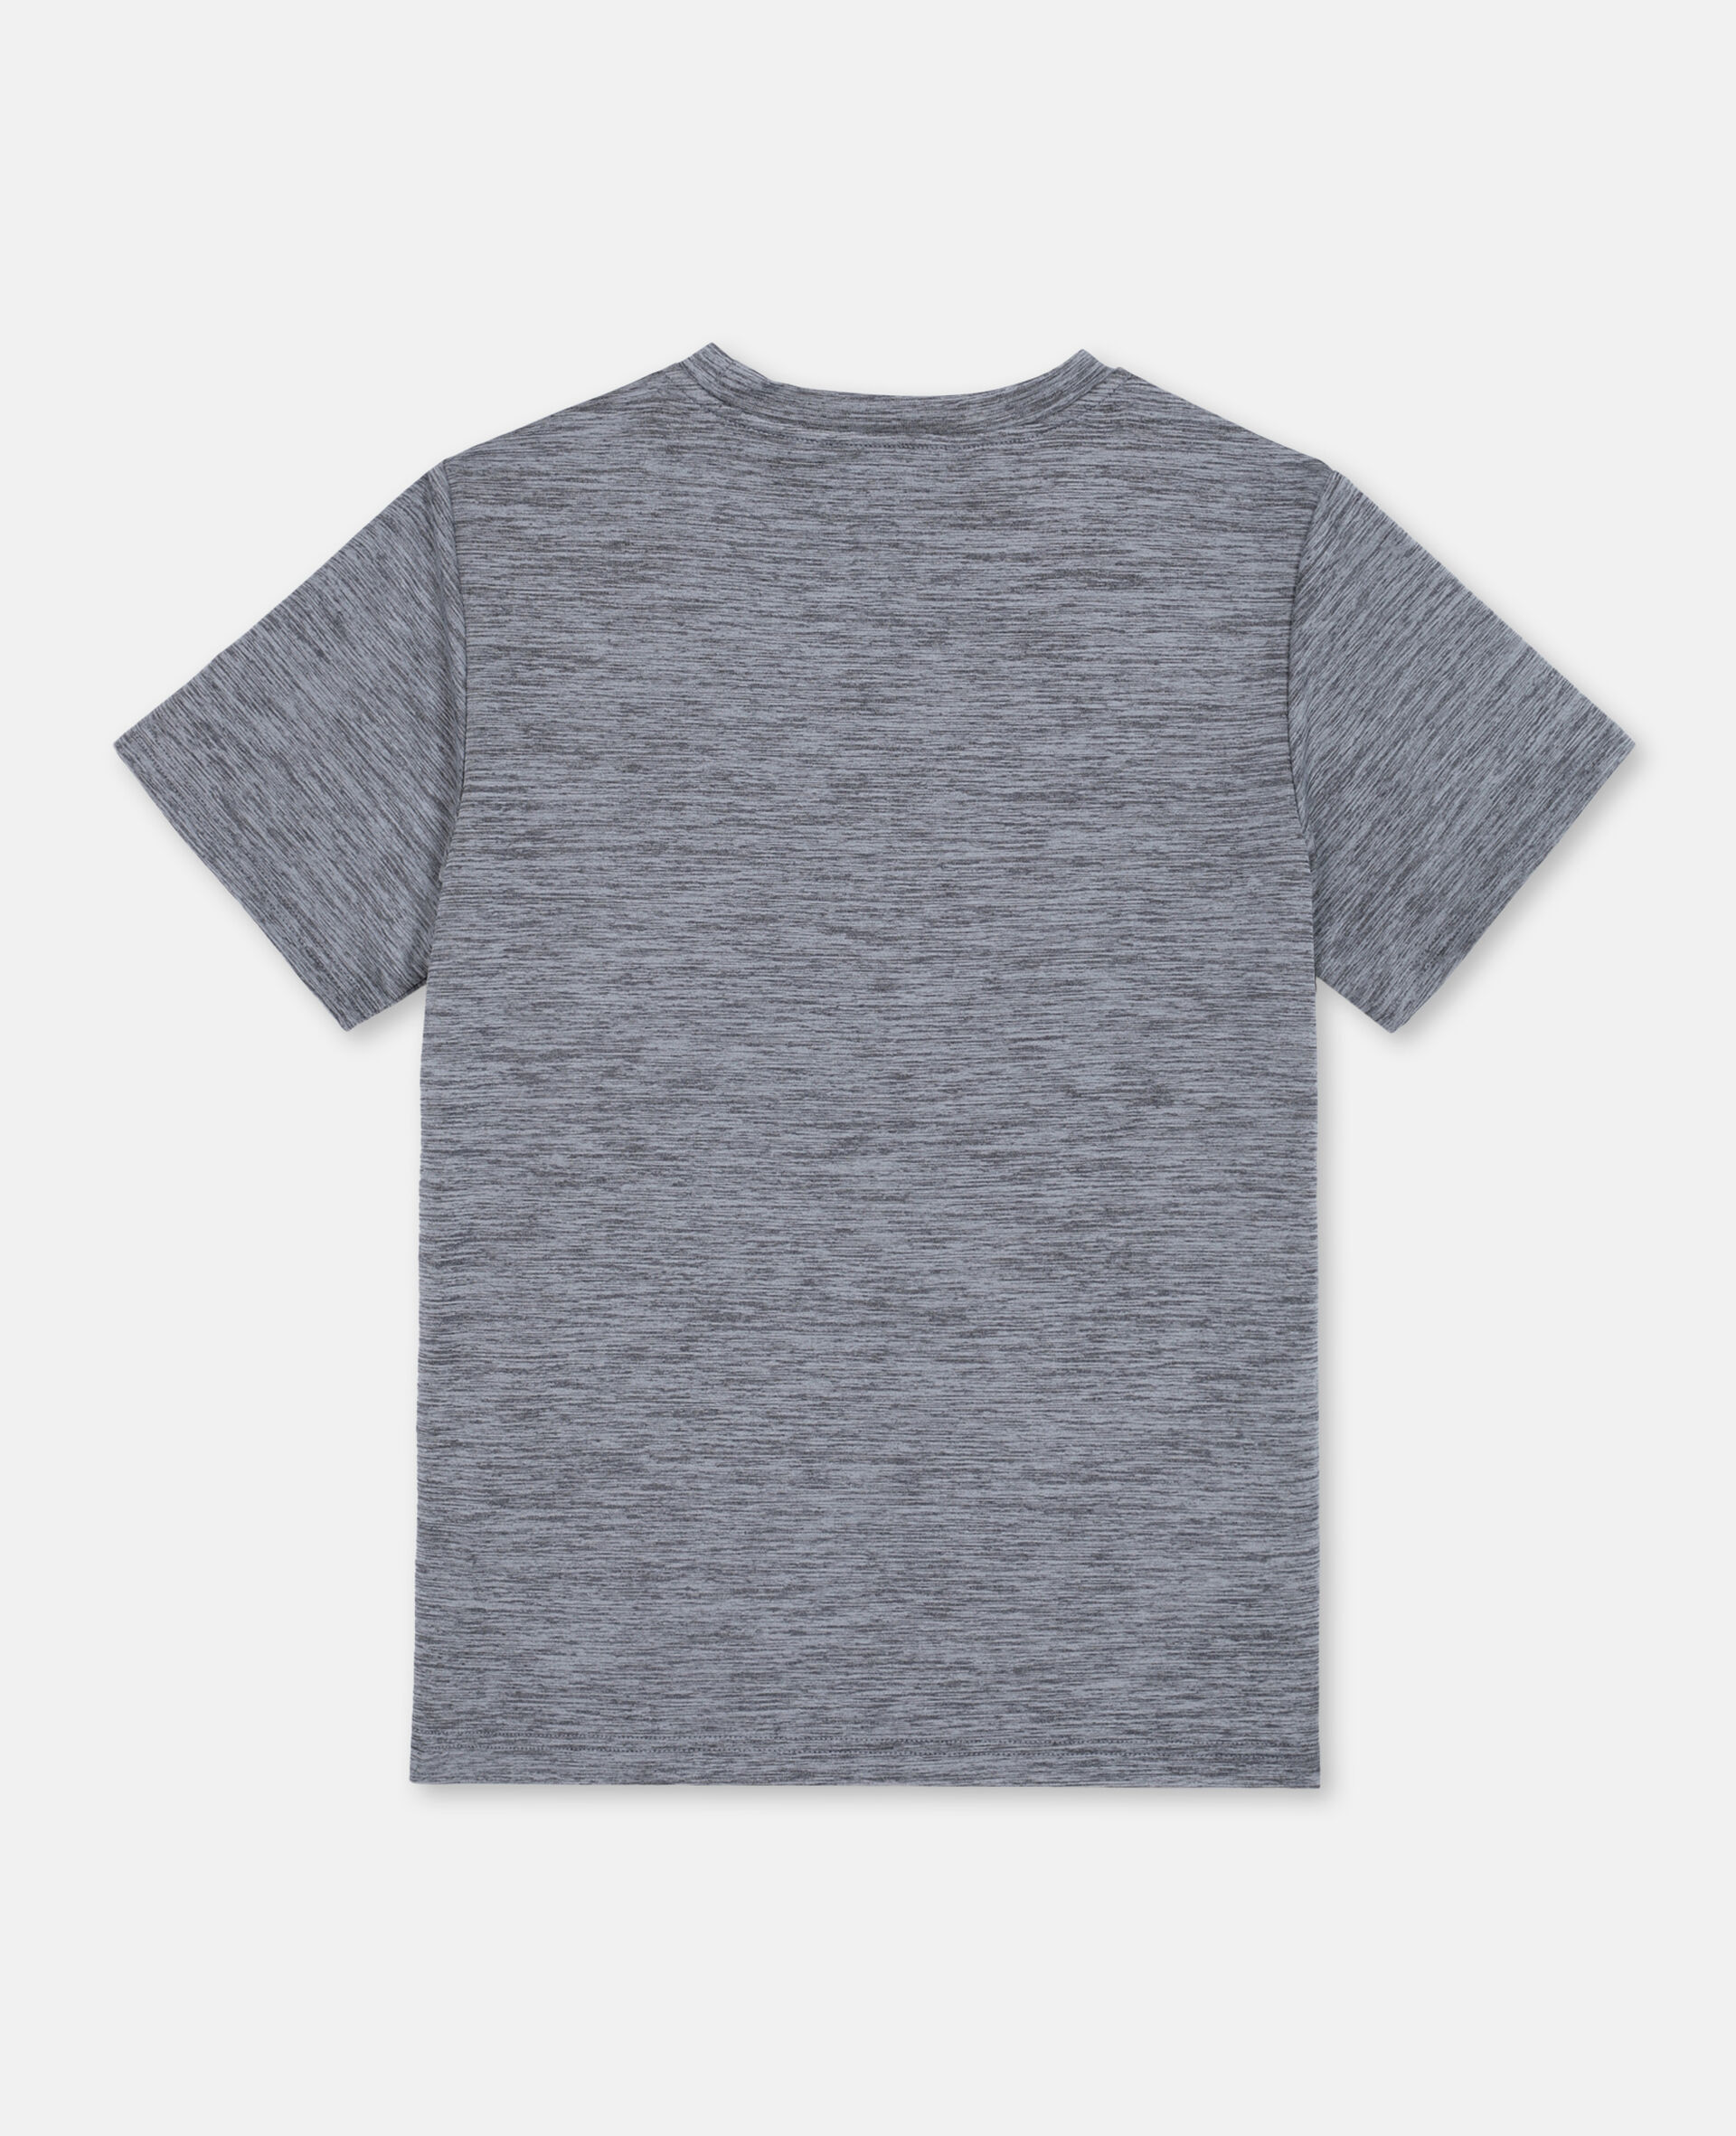 Space Dye Active T-shirt -Grey-large image number 3